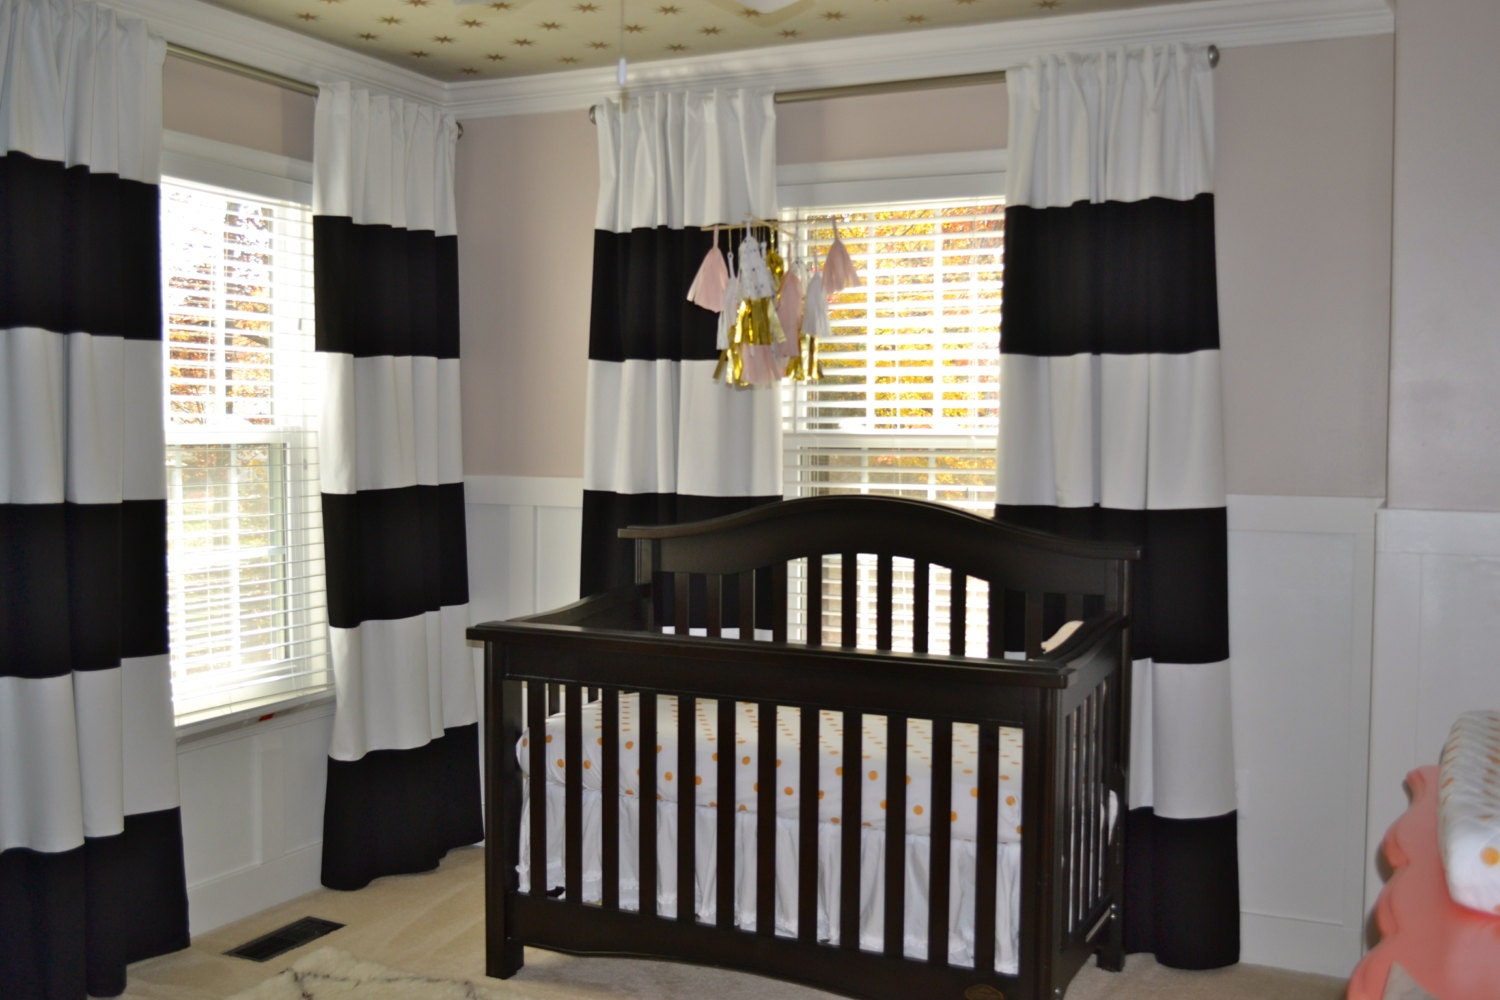 84 black and white horizontal striped curtains custom